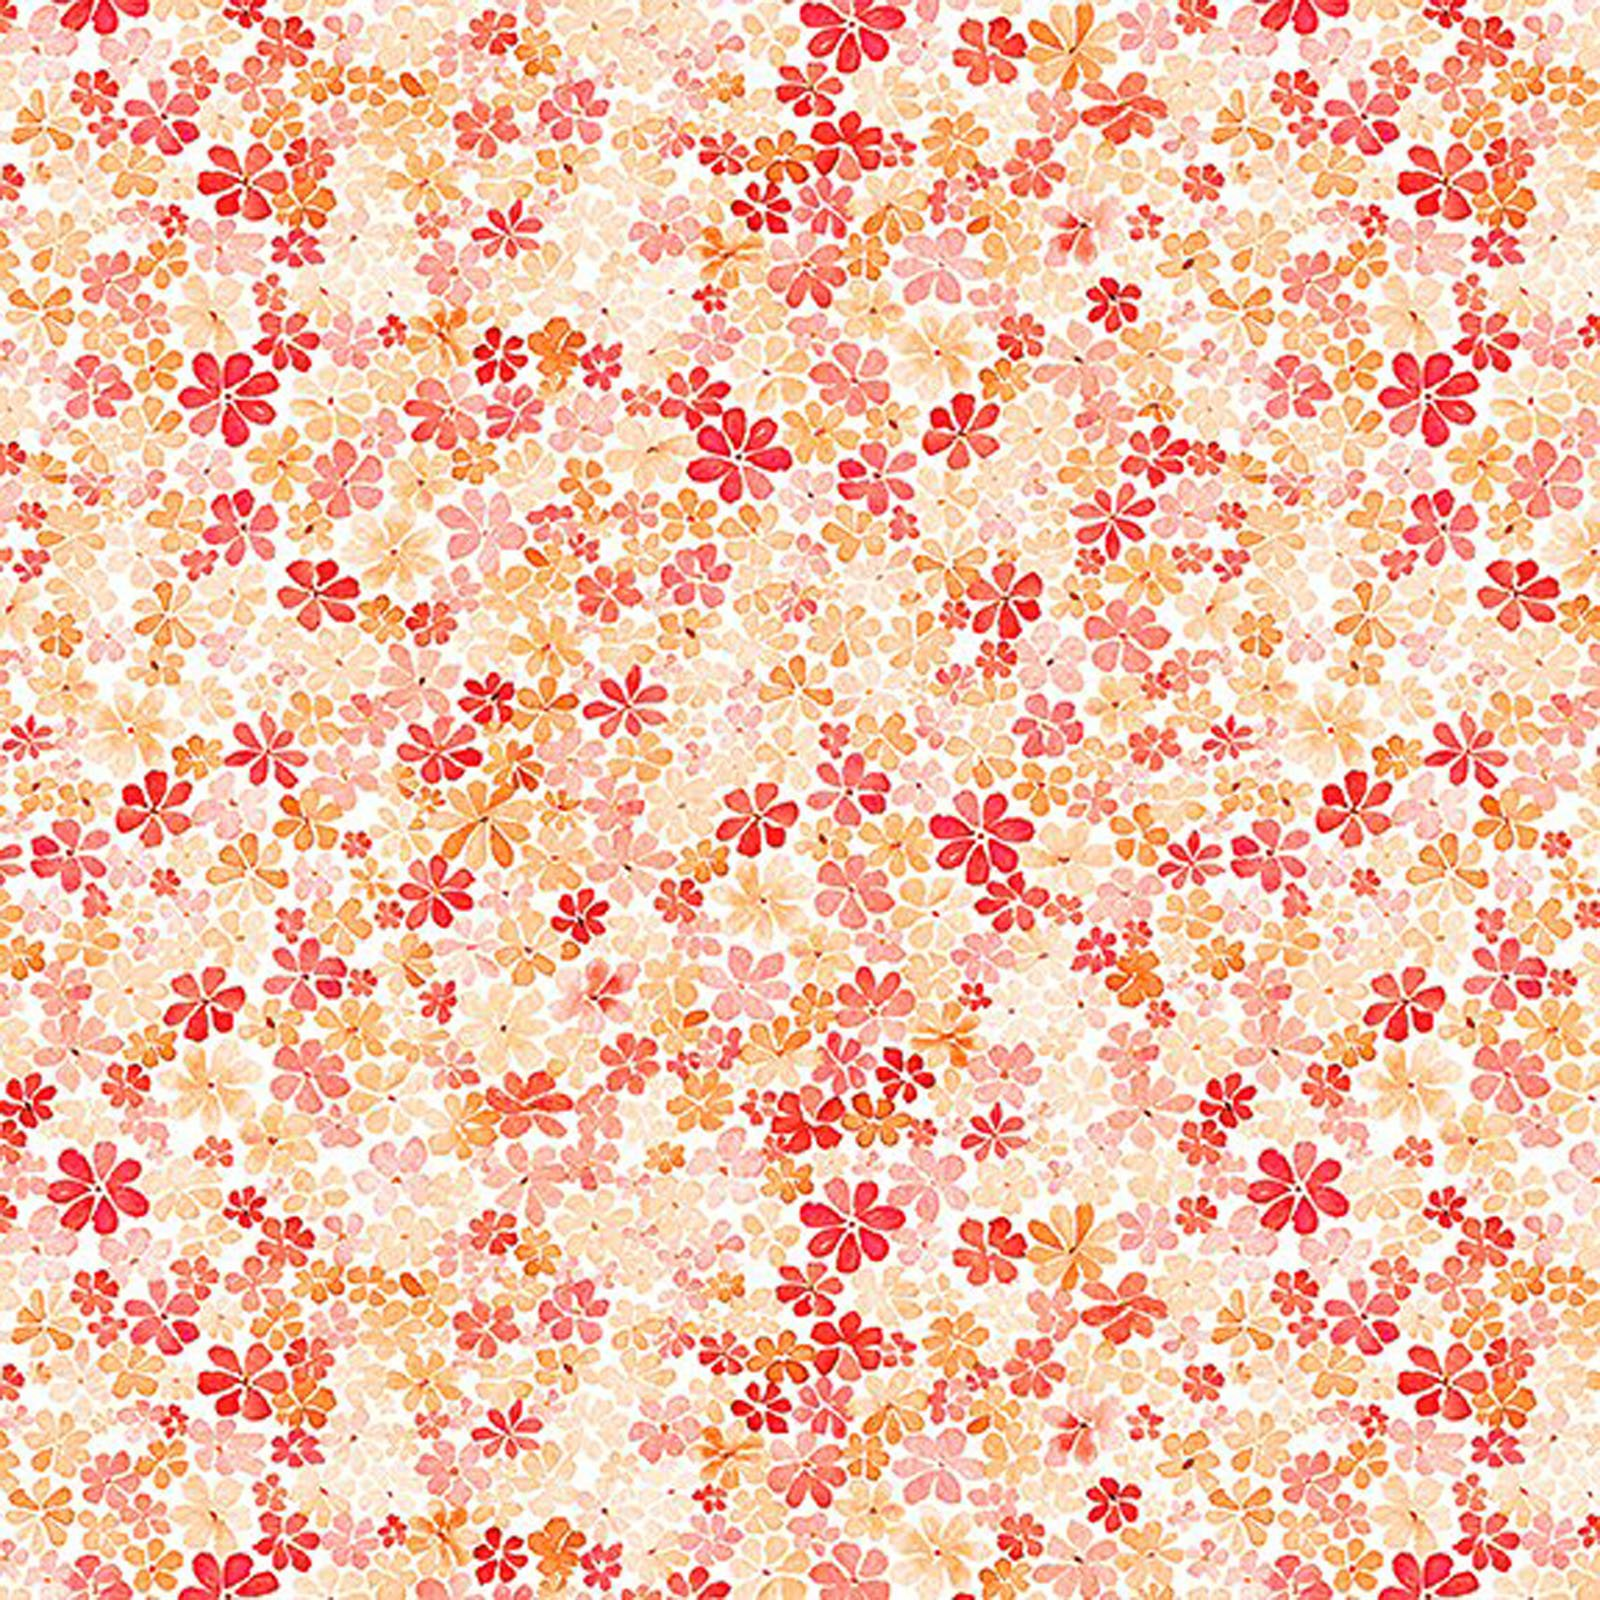 INTH-17GSH 1 - WATERCOLOR BEAUTY BY IN THE BEGINNING DAISY ORANGE - ARRIVING IN MAY 2021